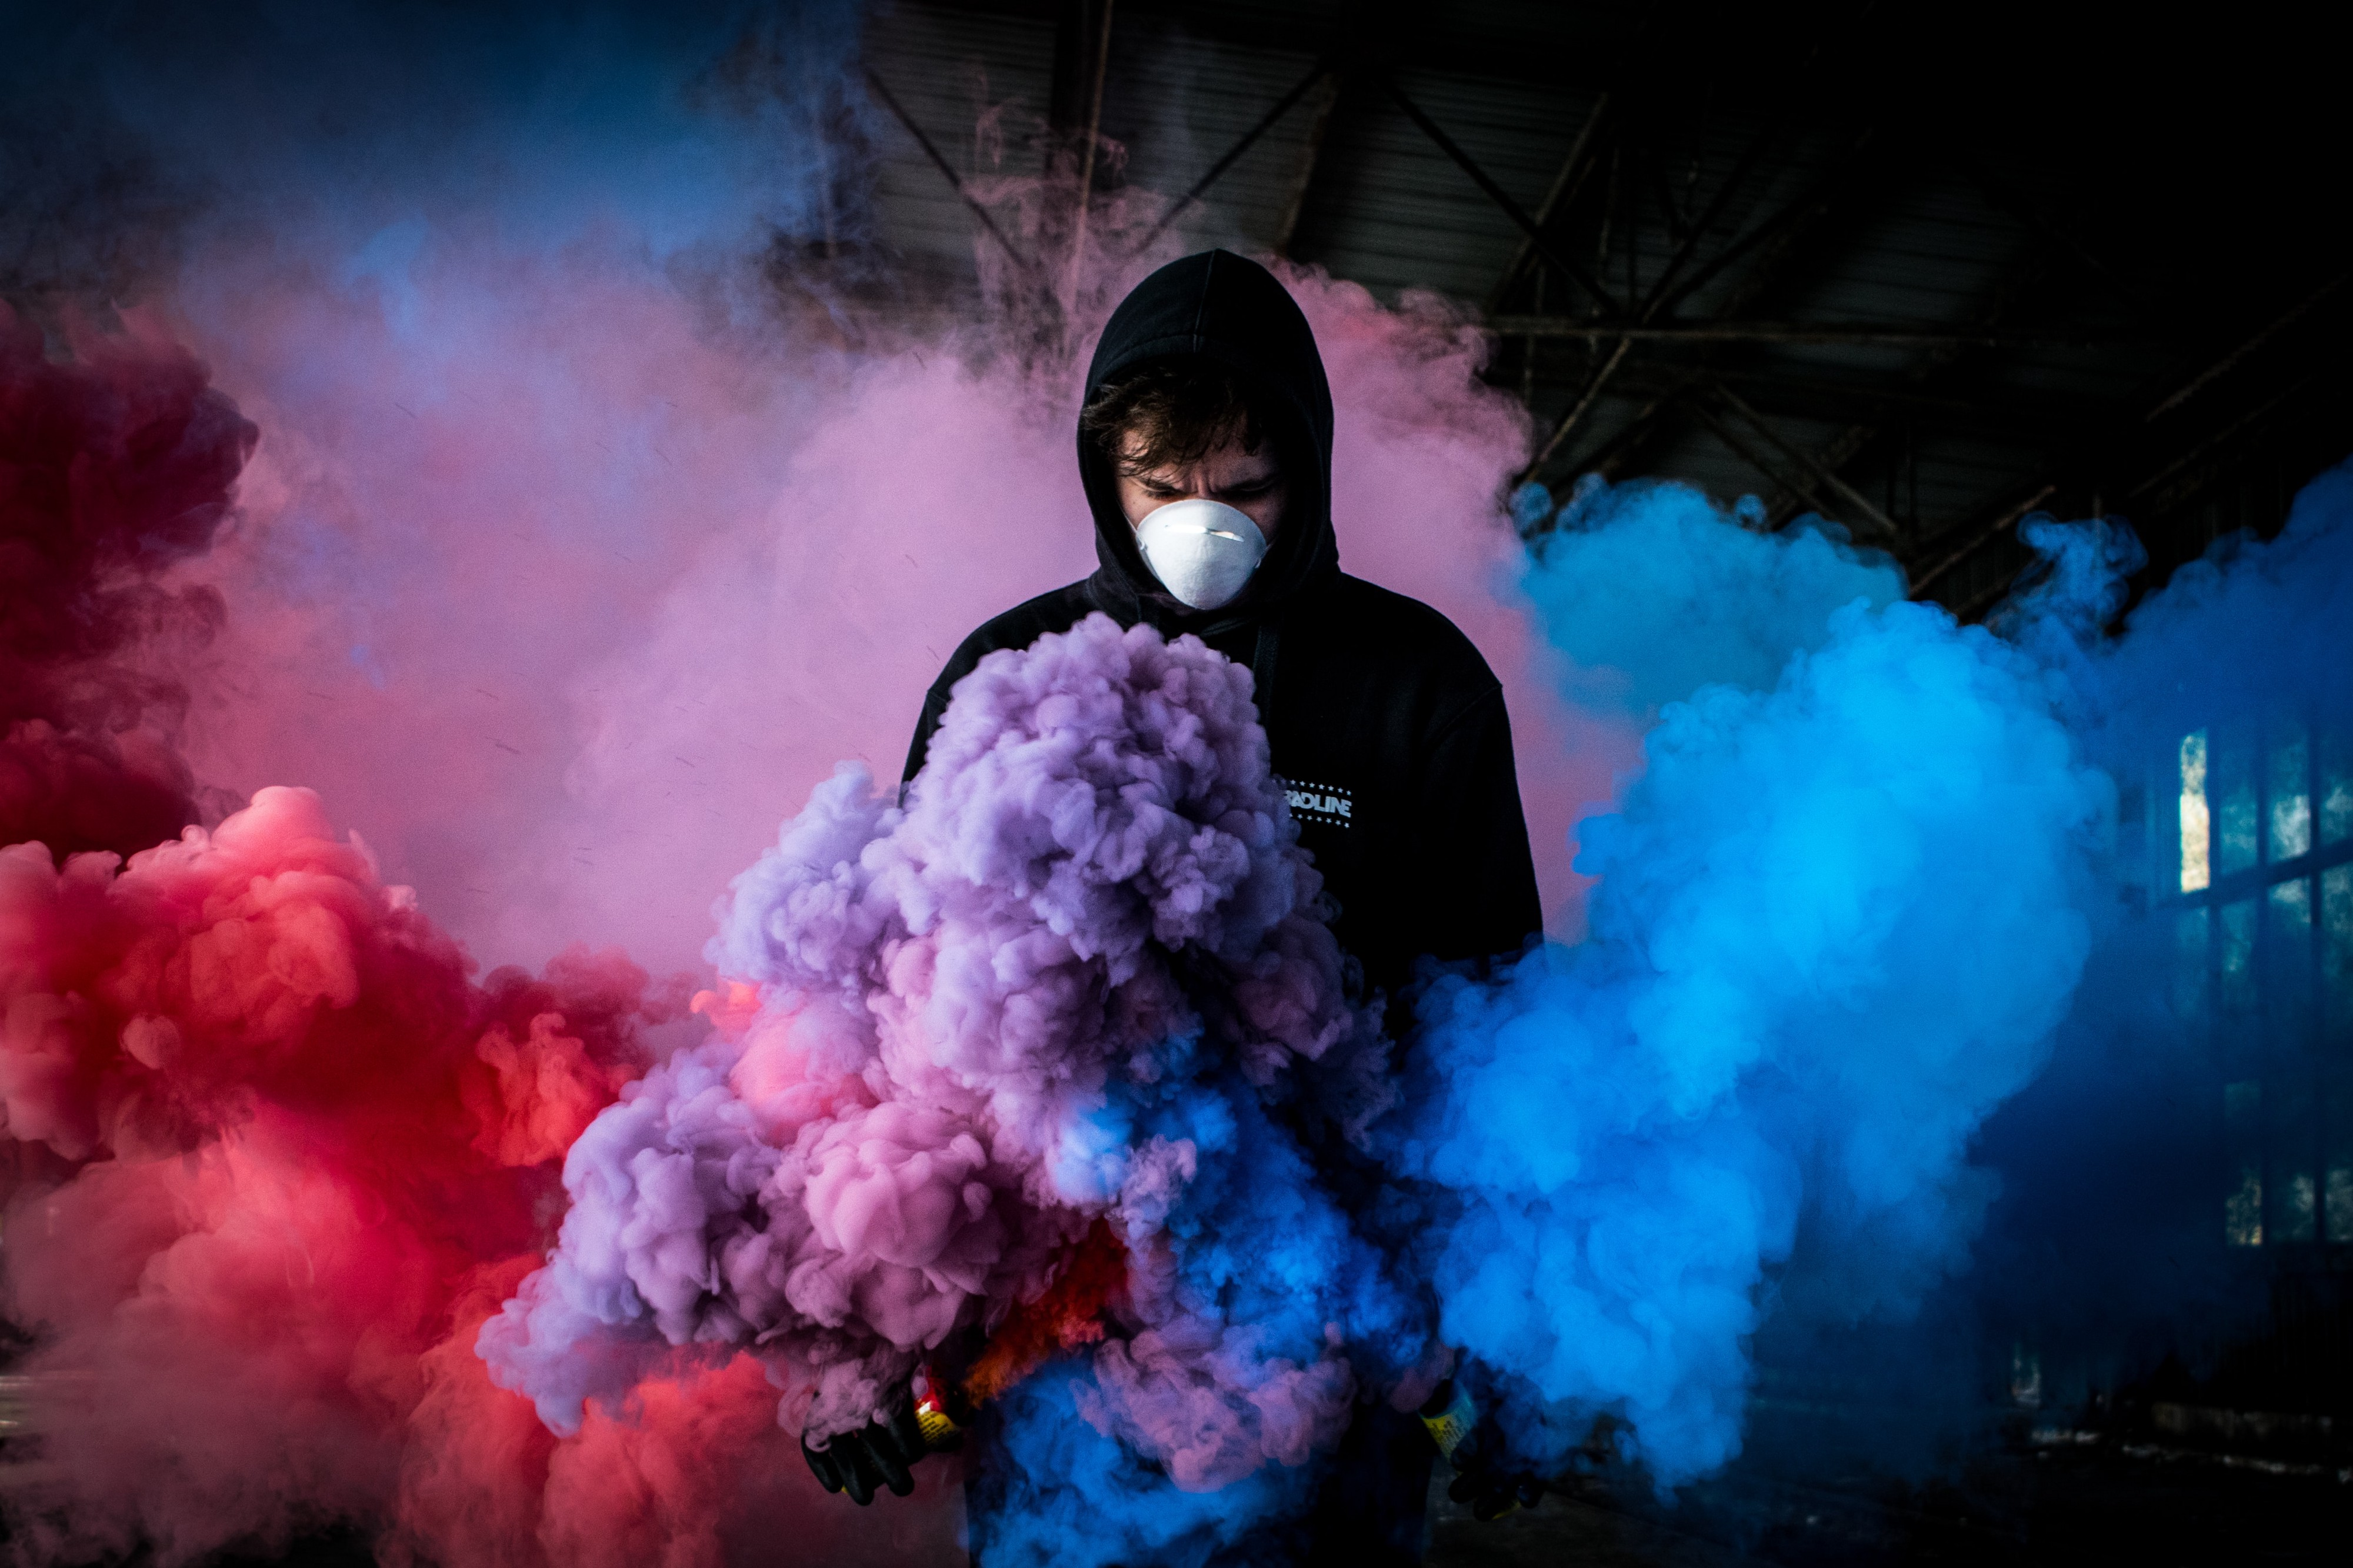 treated—a figure in a hoodie and mask moving through clouds of colorful smoke.